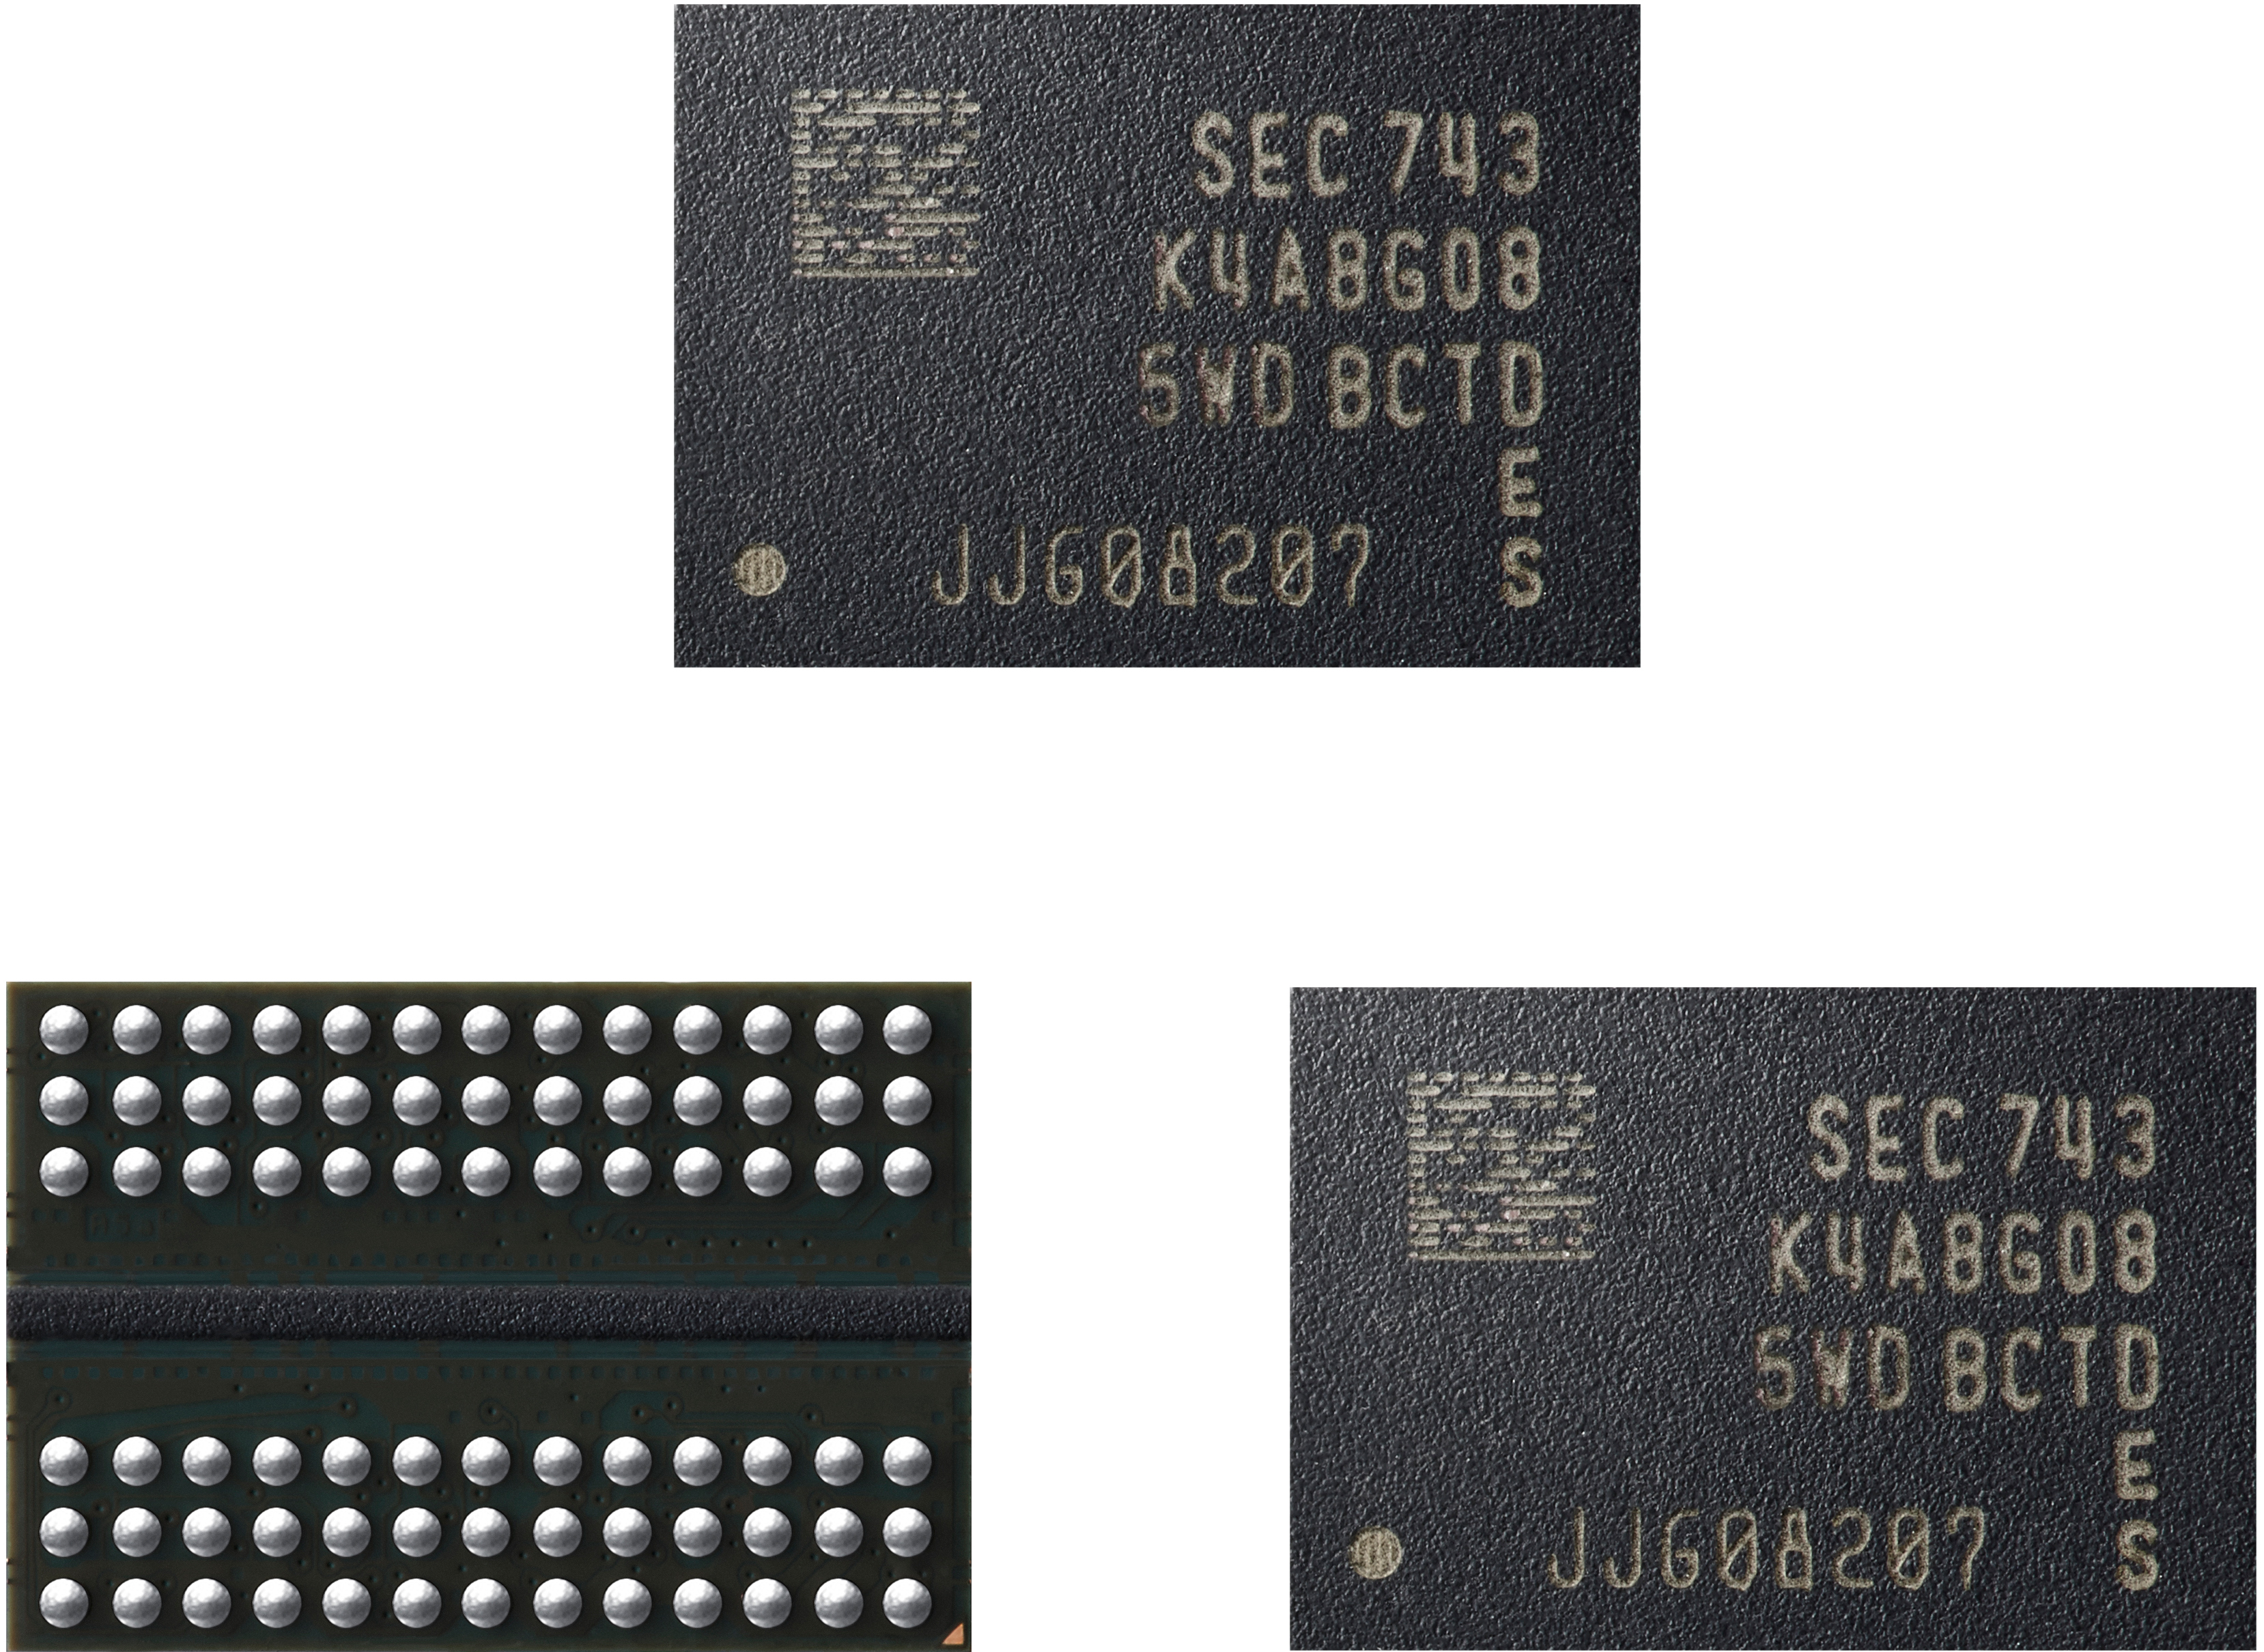 Samsung Announces Mass Production for 2nd Generation Process for 10 nm DRAM